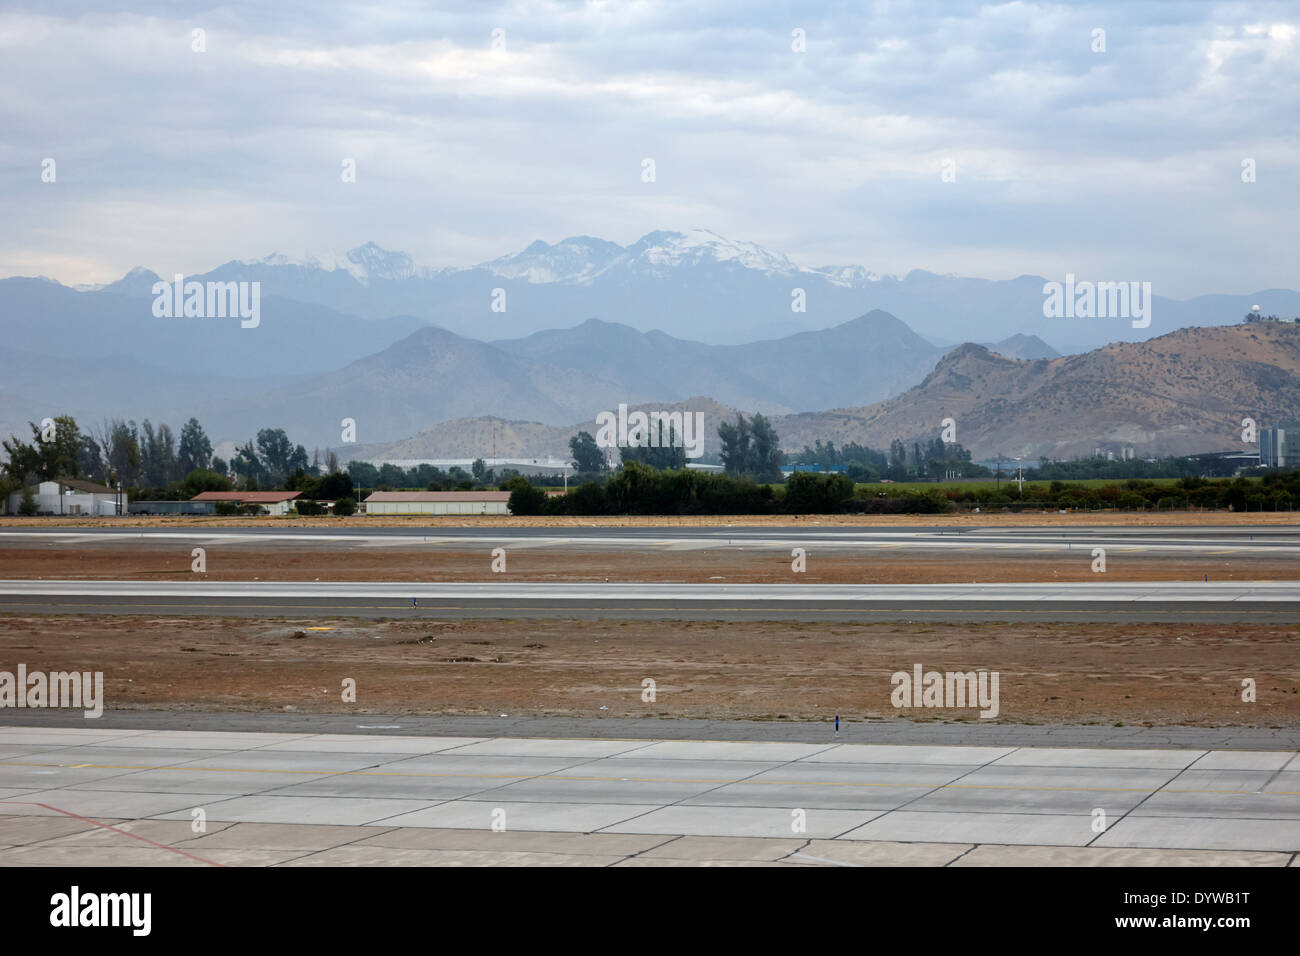 Runways and coastal mountain range at Comodoro Arturo Merino Benitez International Airport Santiago Chile - Stock Image